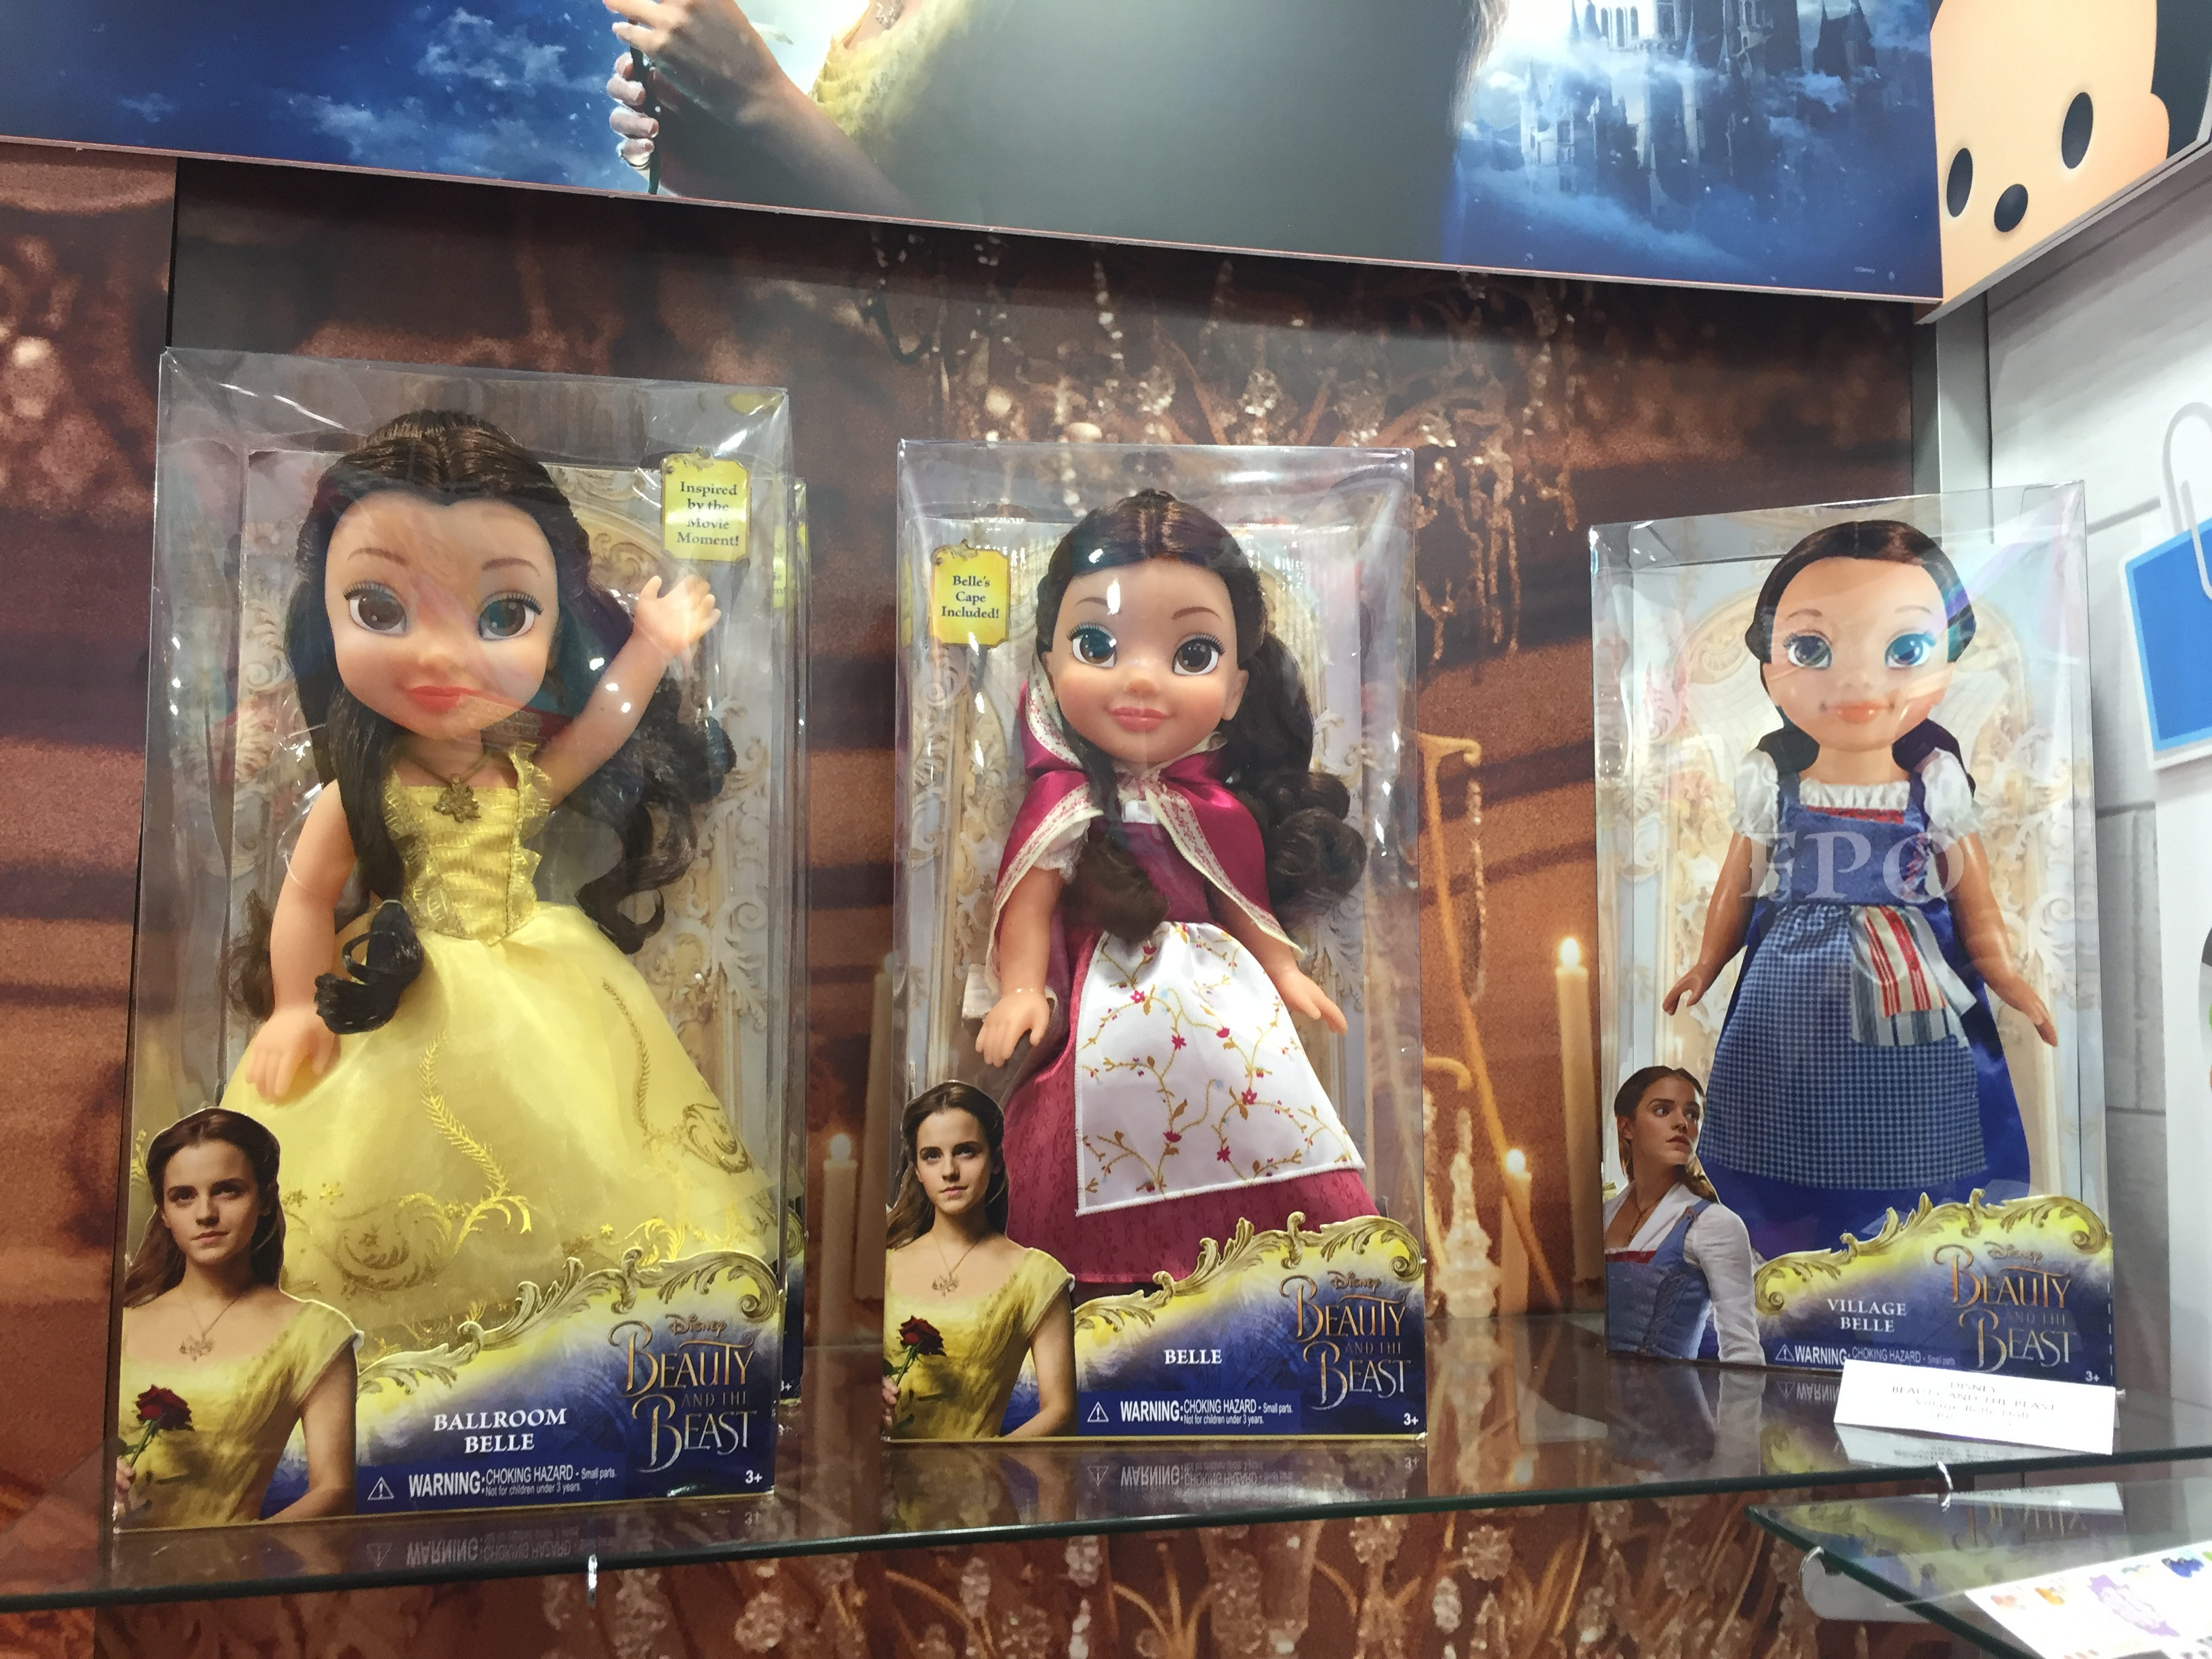 While Hasbro Has The License For Beauty And Beast 12 Inch Dolls Jakks Pacific Freedom To Make Larger Scale